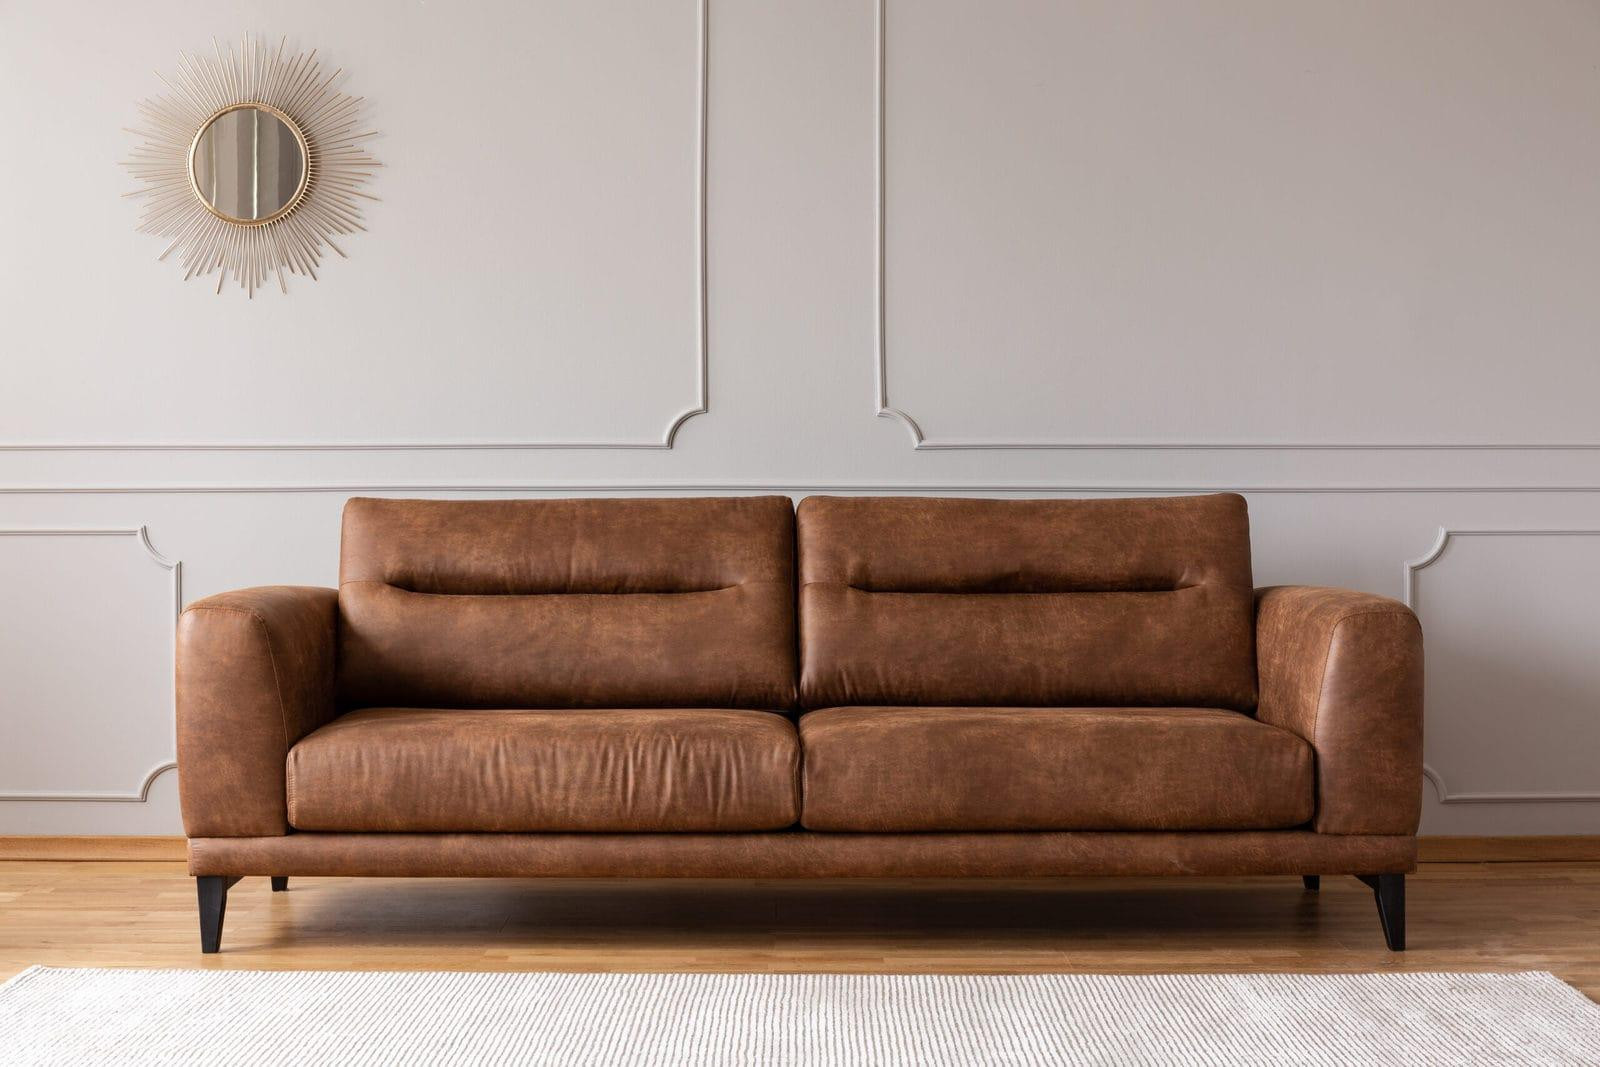 A Leather Sofa In An Elegant Living Room (2)